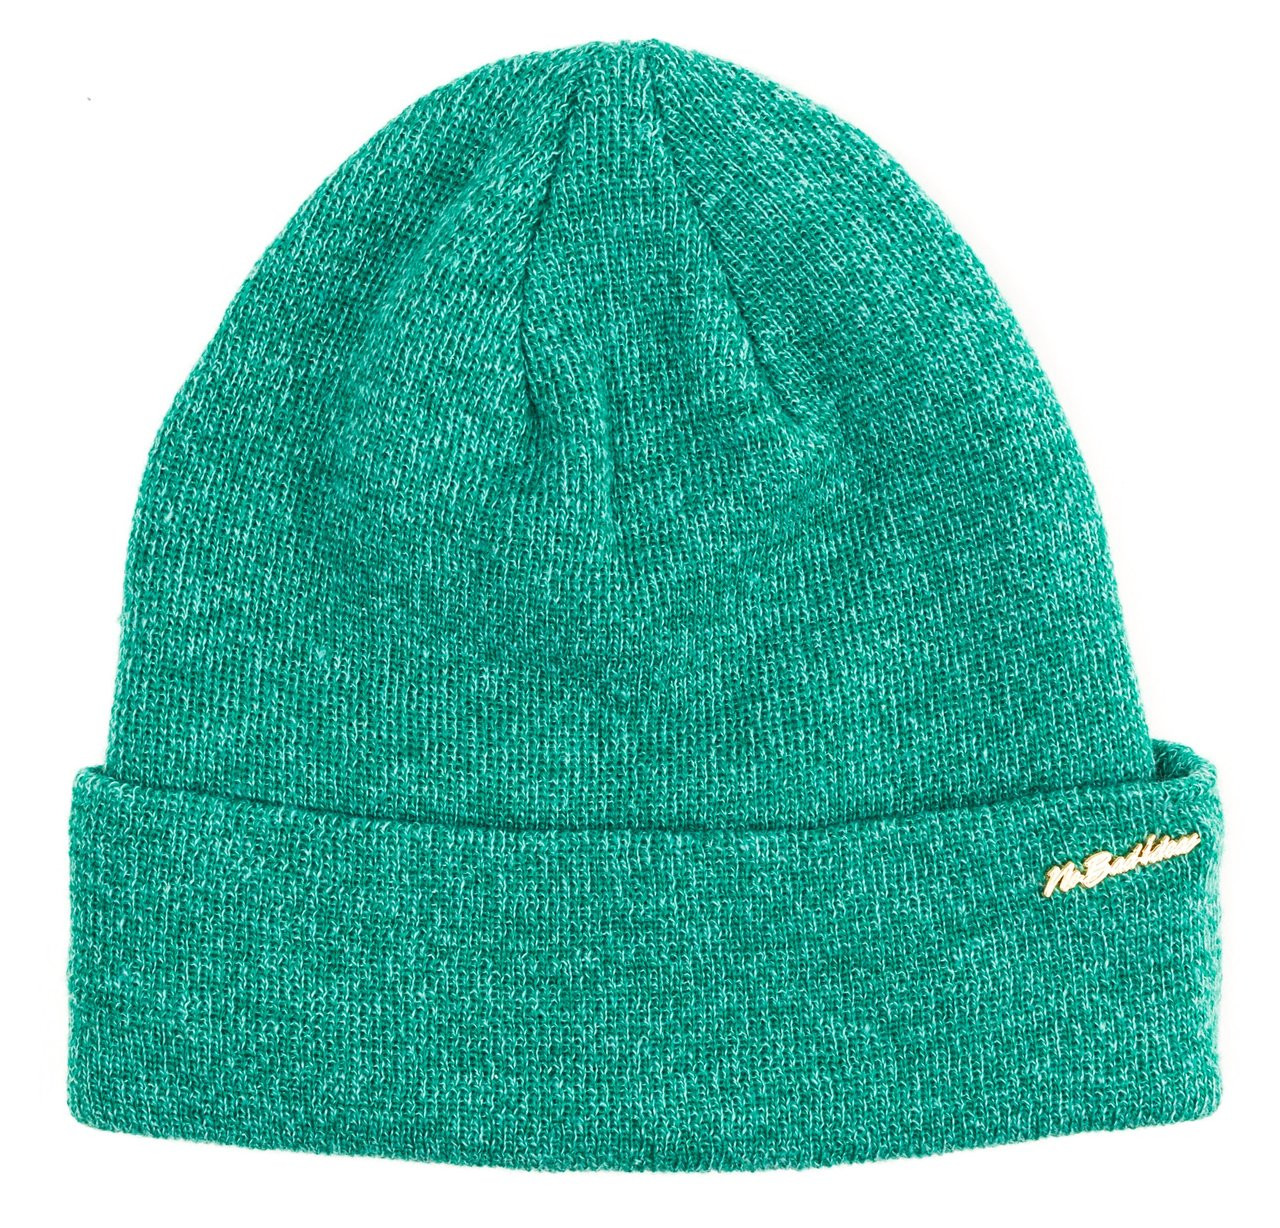 No Bad Ideas - Knits - Baker Watchman (Teal)